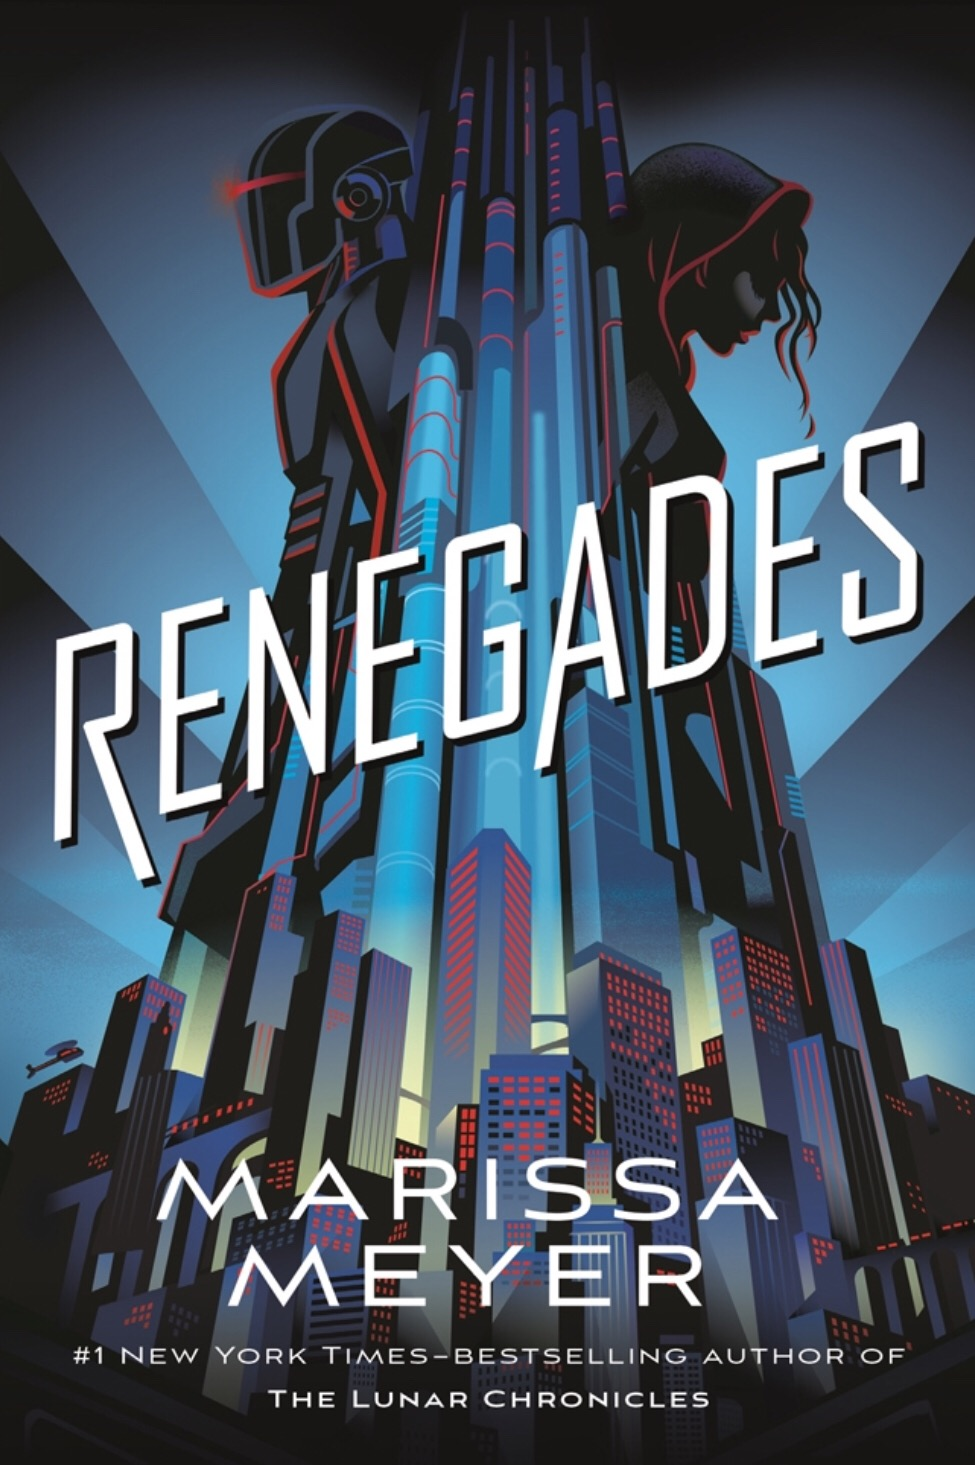 Renegades - By Marissa MeyerMy rating: 4 stars |  Pages: 556What made me pick it up: I love a good superhero story, especially a villain backstoryFormat: eBook |  Source: BorrowBox2018 challenge/s: Goodreads 2018 Reading Challenge; AusYA Blogger Challenge 2018